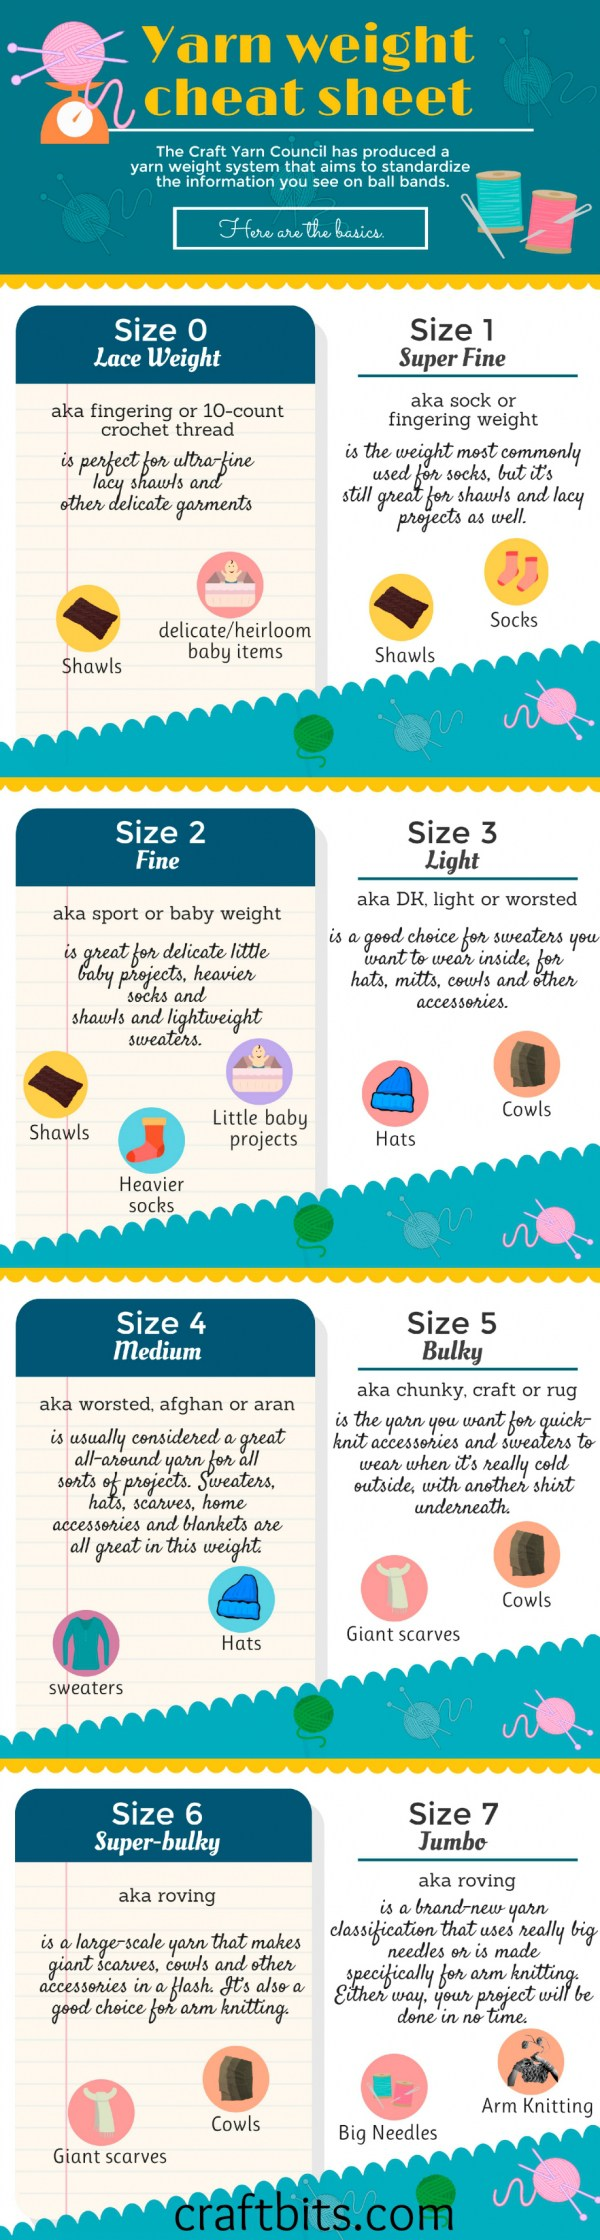 For the fabric of the season, a yarn infographic